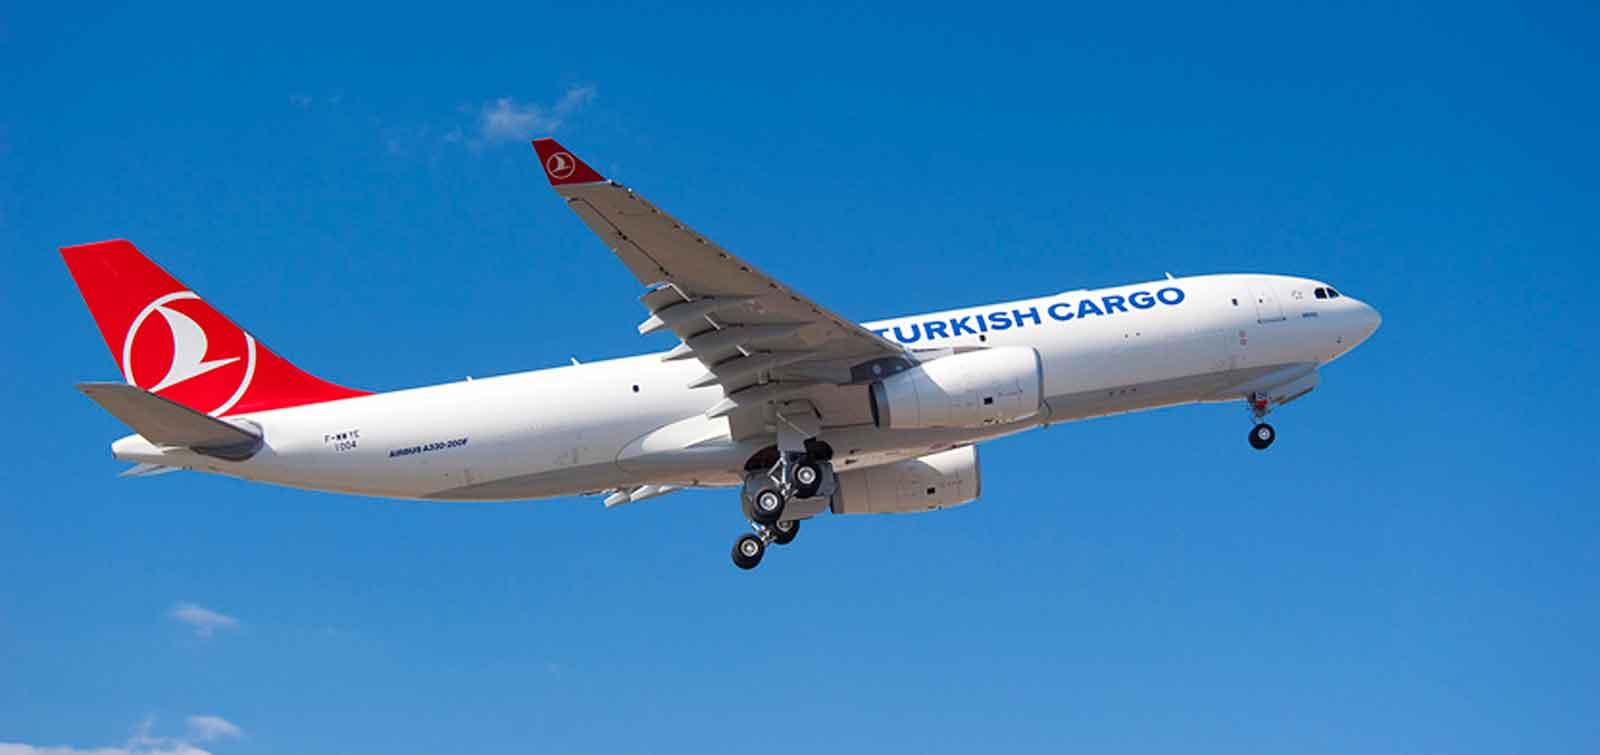 A330 Freighter - Turkish Airlines orders four additional Airbus A330-200 Freighters